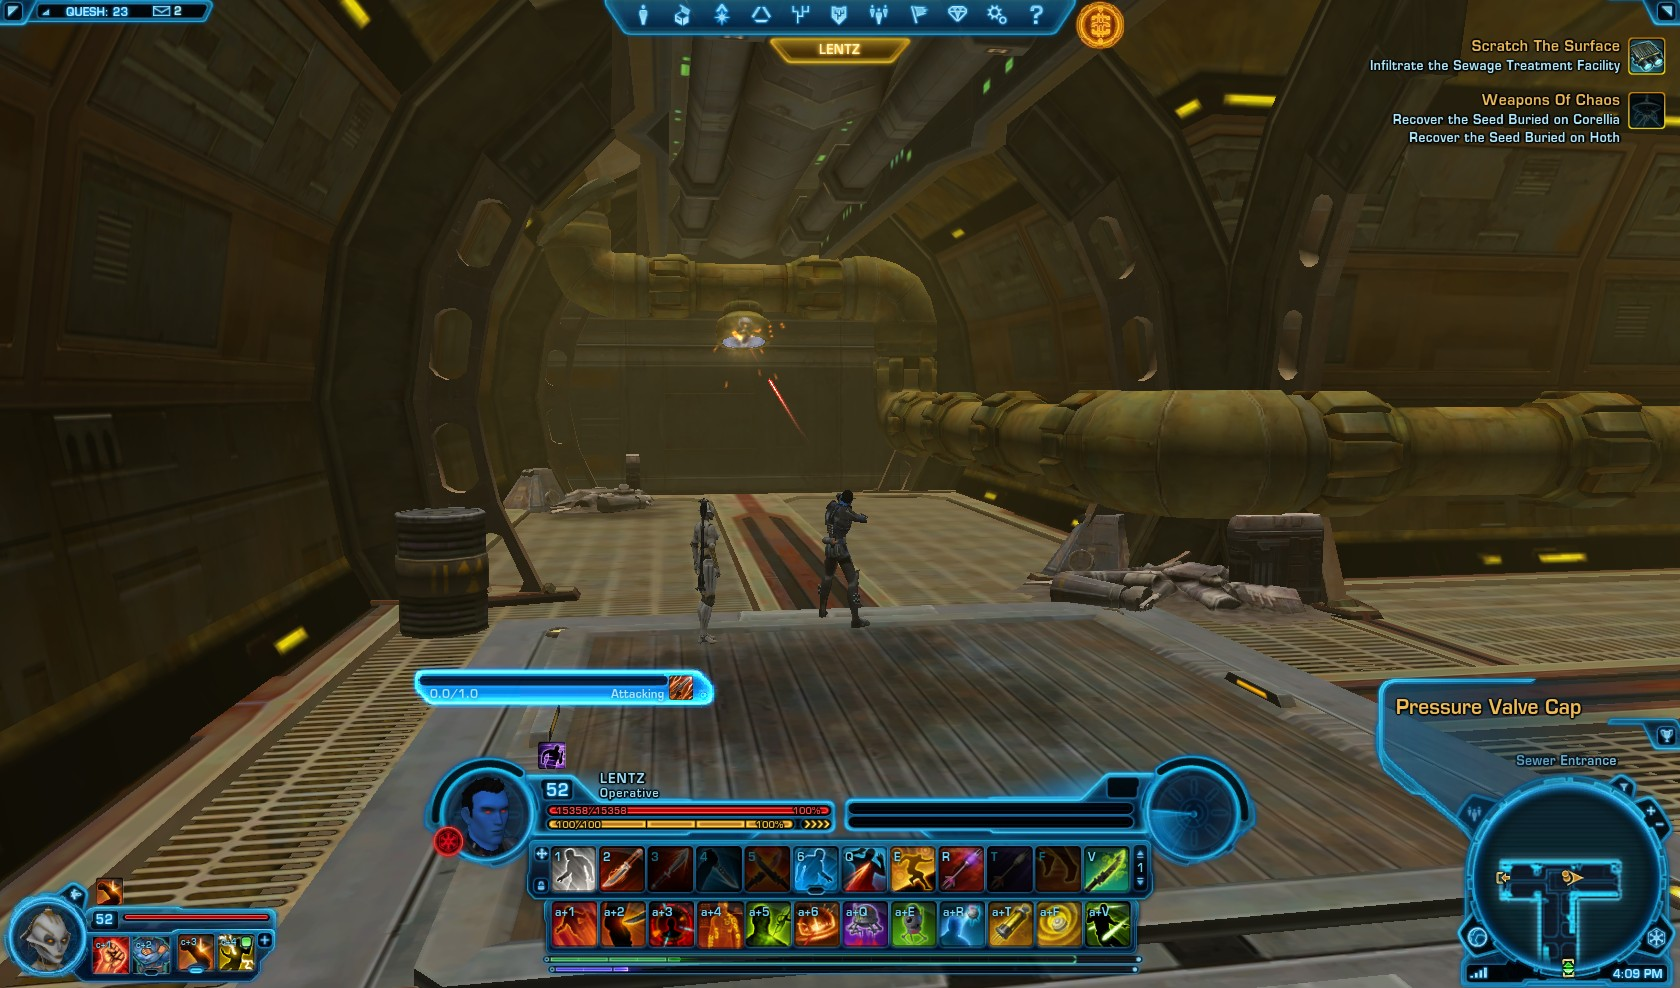 Swtor Scratch The Surface Macrobinocular Mission